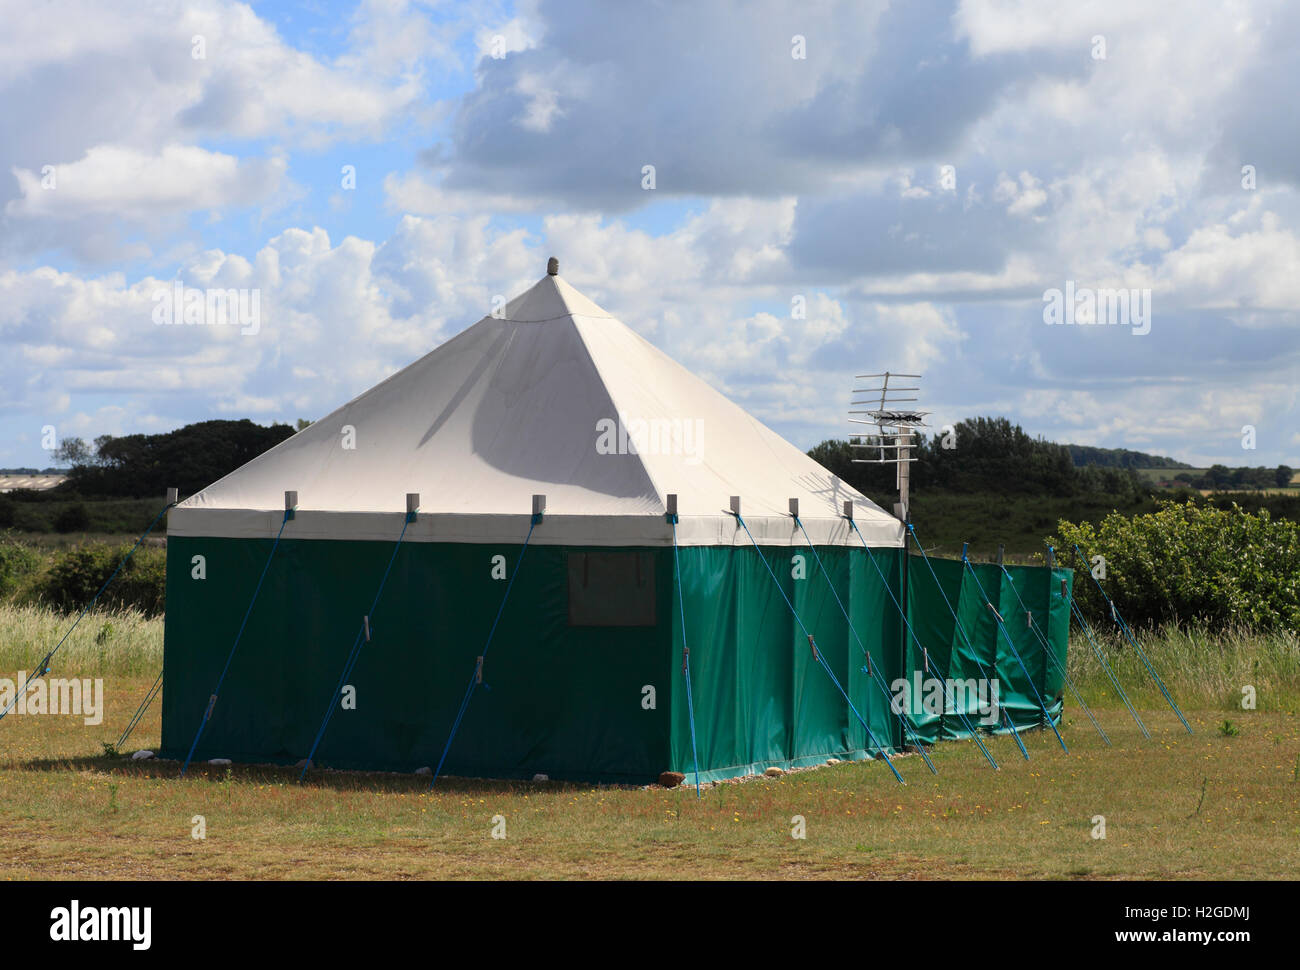 Tent with a television aerial. - Stock Image